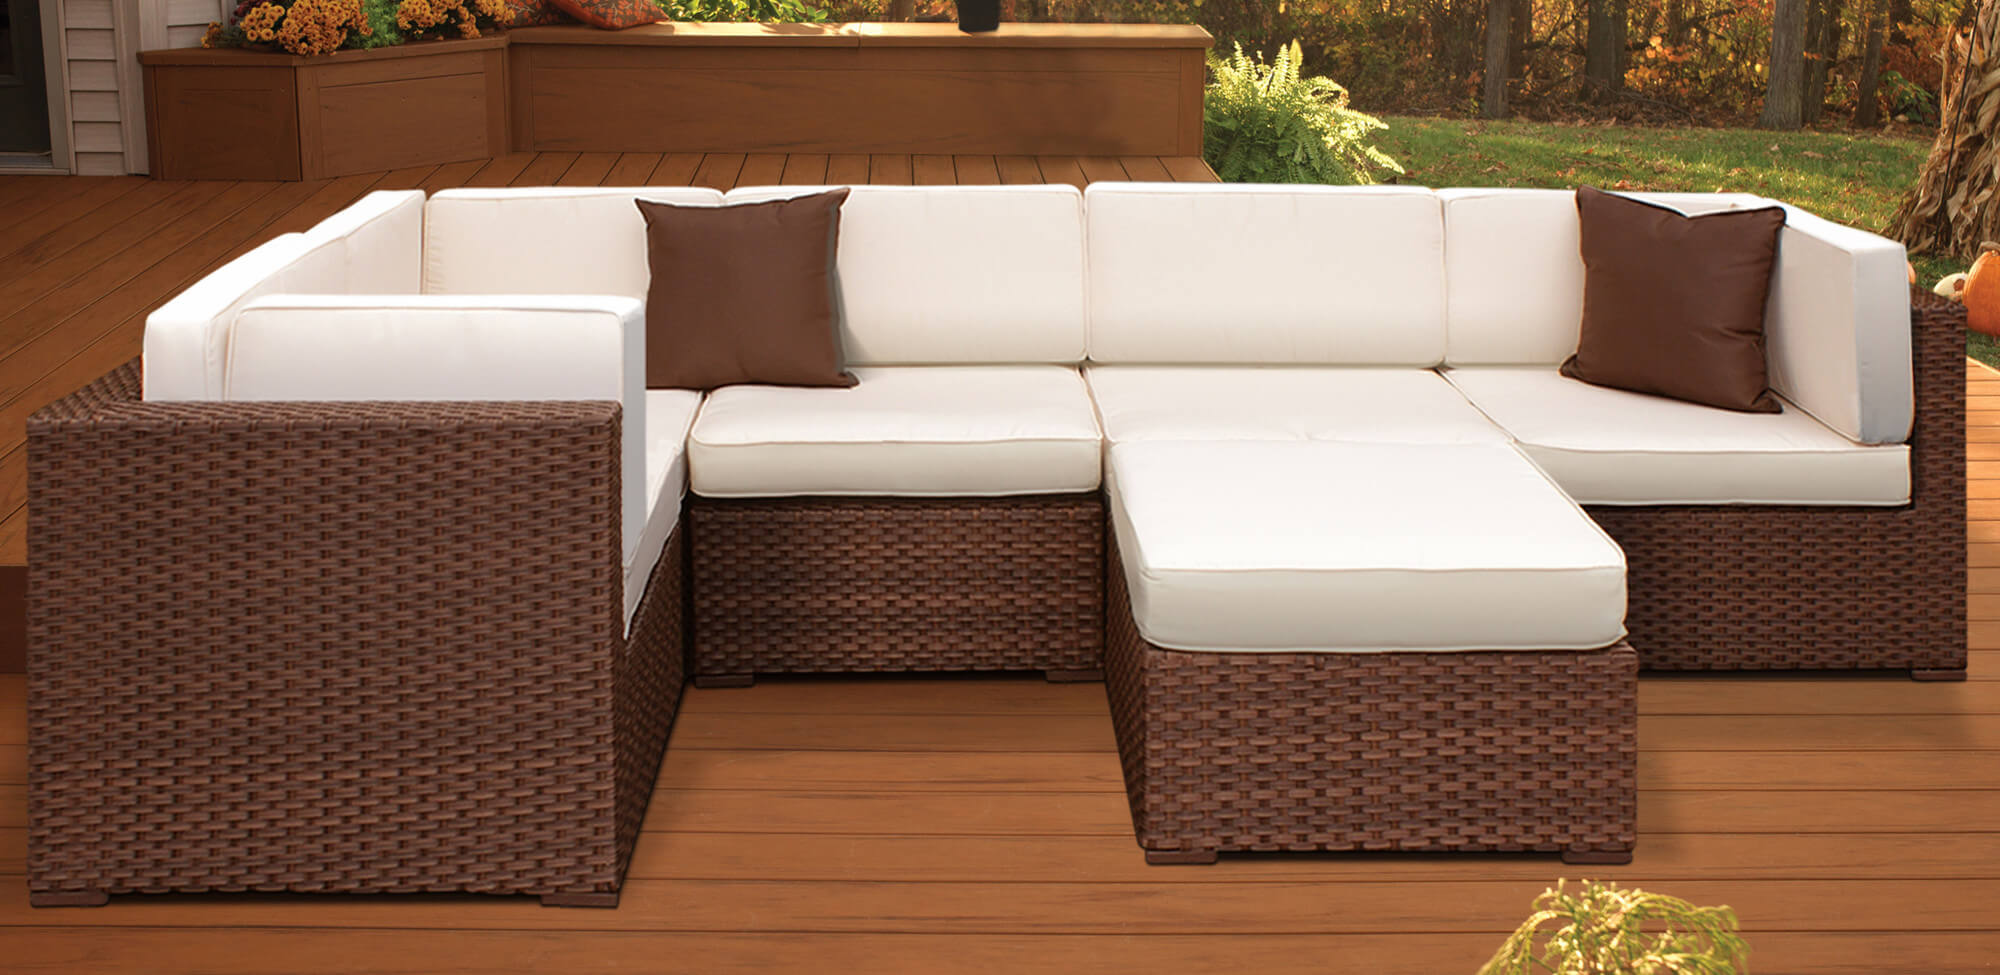 Brightly contrasting wicker patio sectional features white thick padded cushioning over chocolate body, with single ottoman section providing chaise functionality.